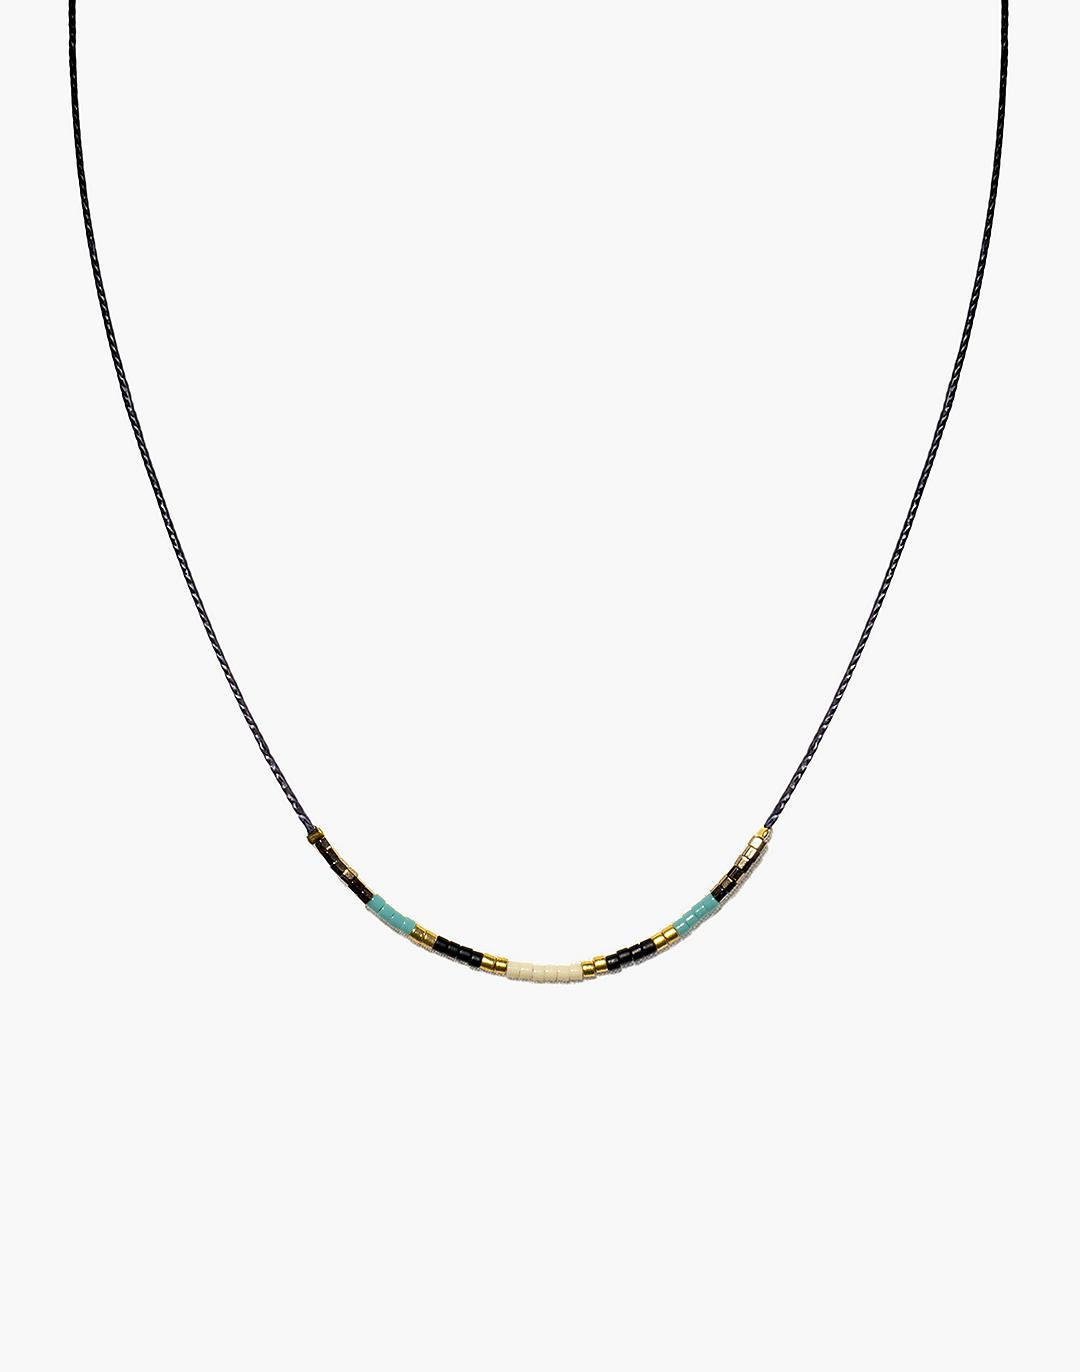 Cast of Stones Beaded Intention Necklace in Turquoise Multicolor